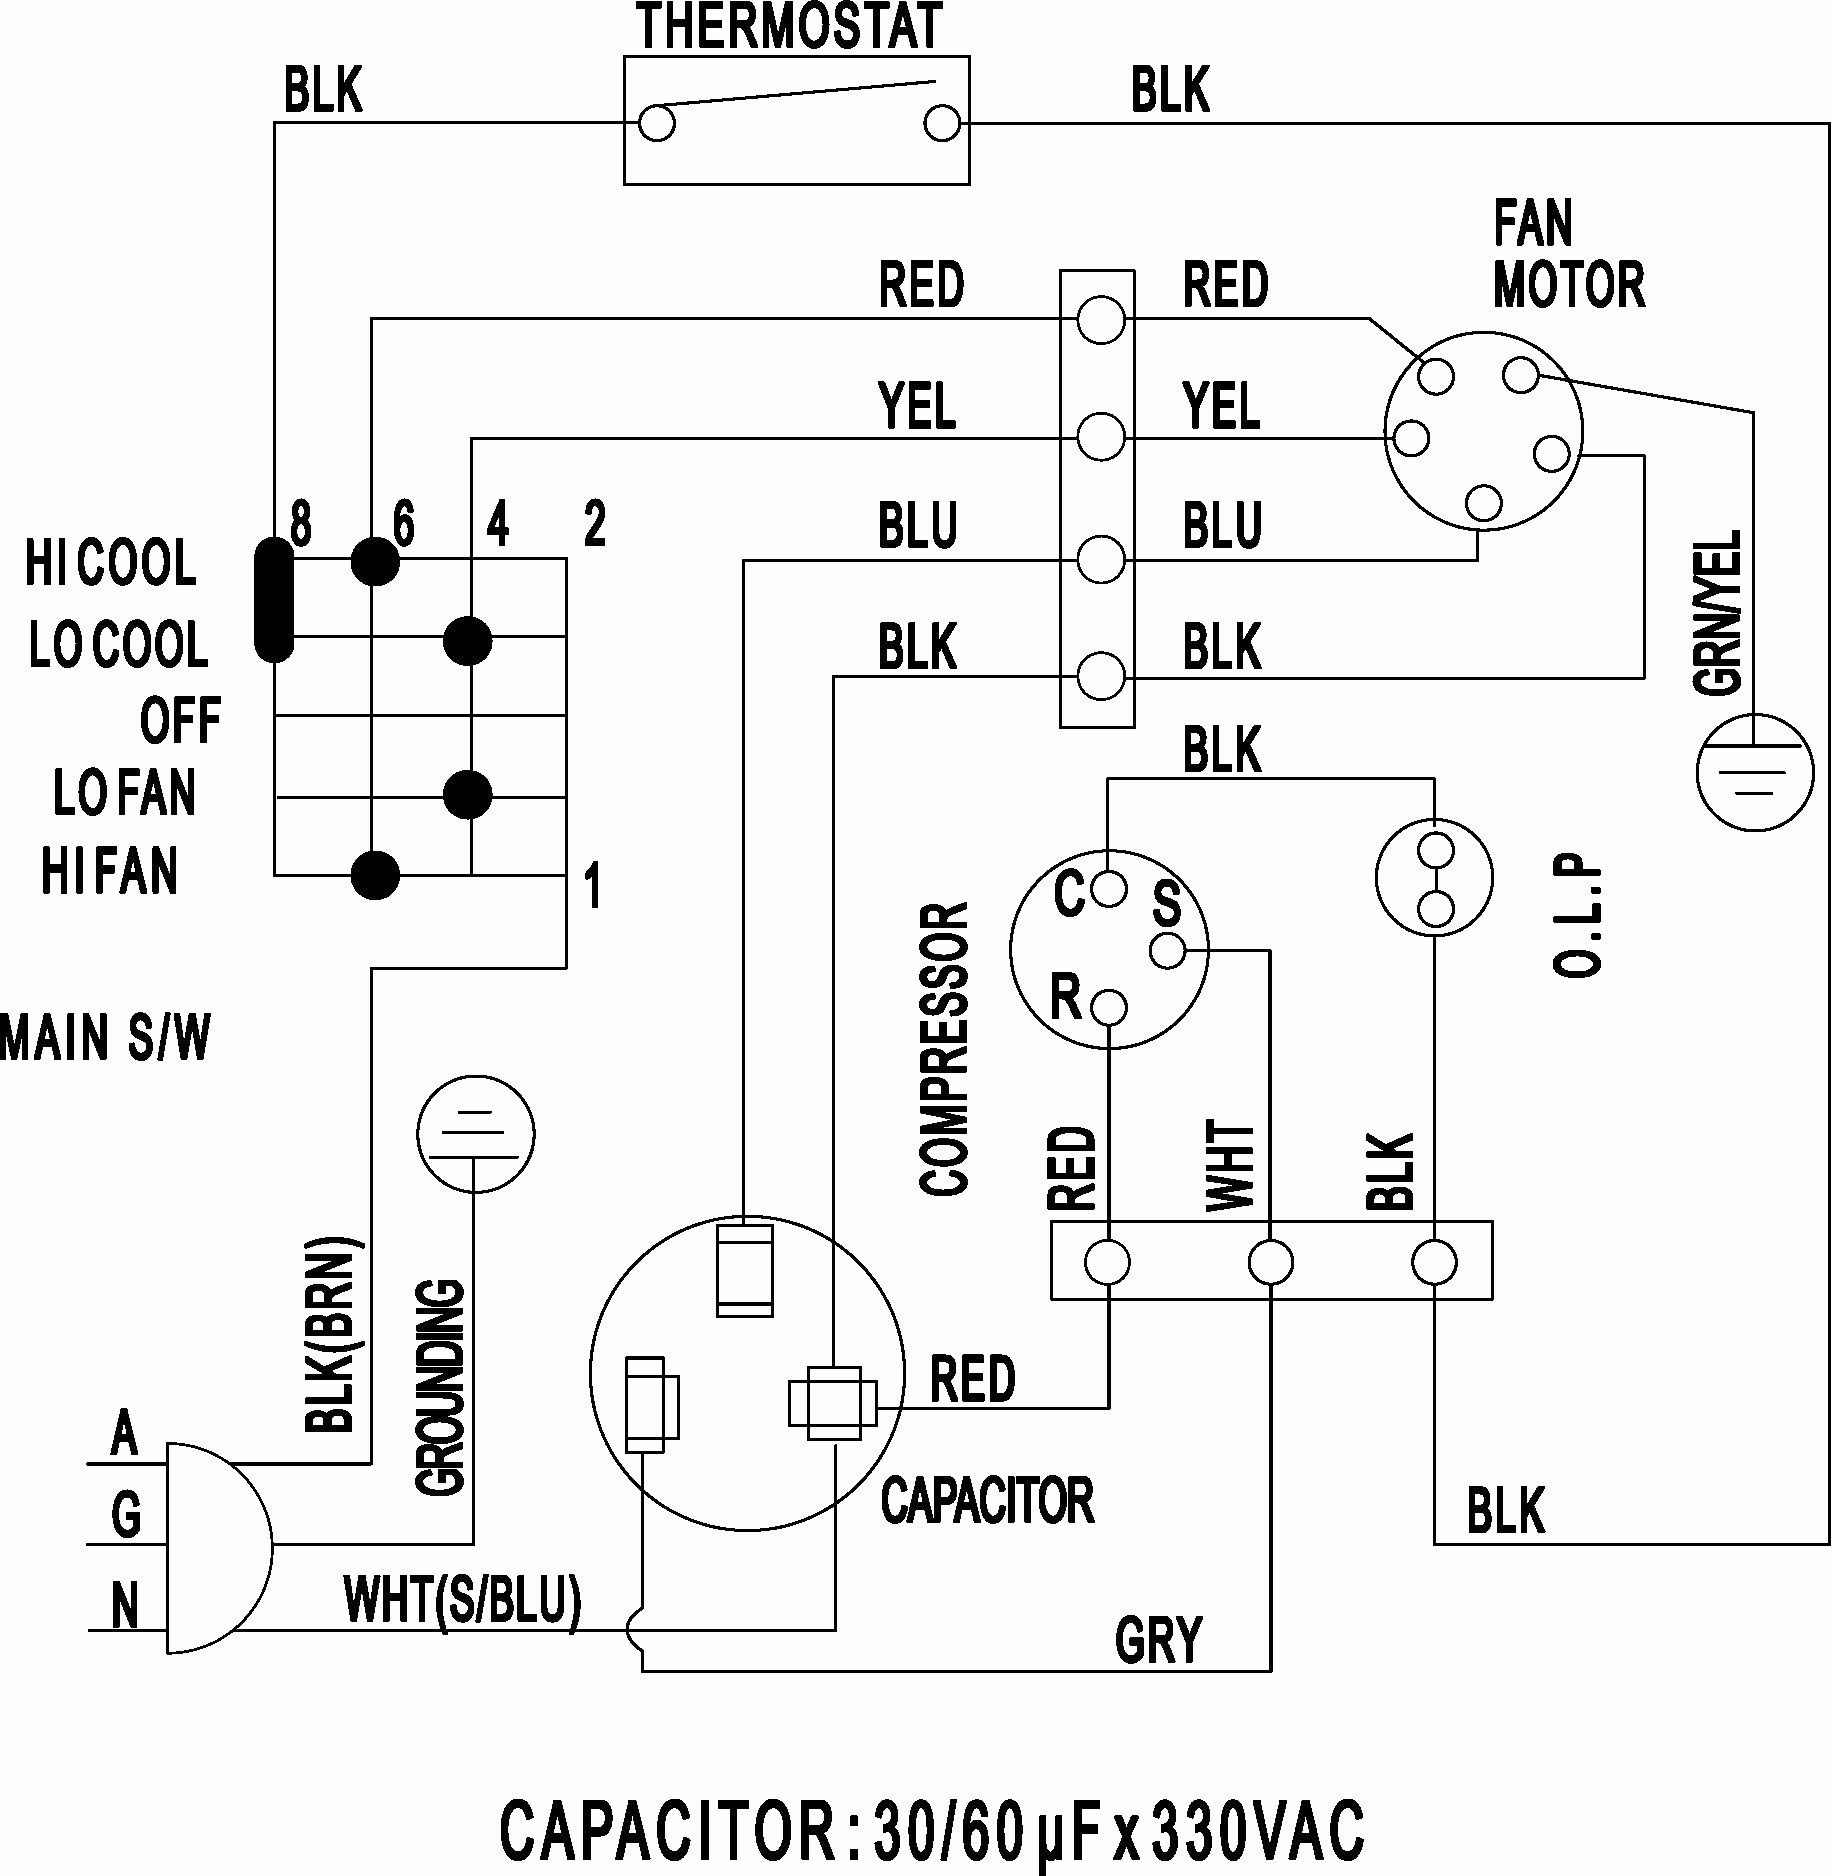 hight resolution of auto air conditioner wiring diagrams wiring diagram database wiring diagram easy set up air conditioning